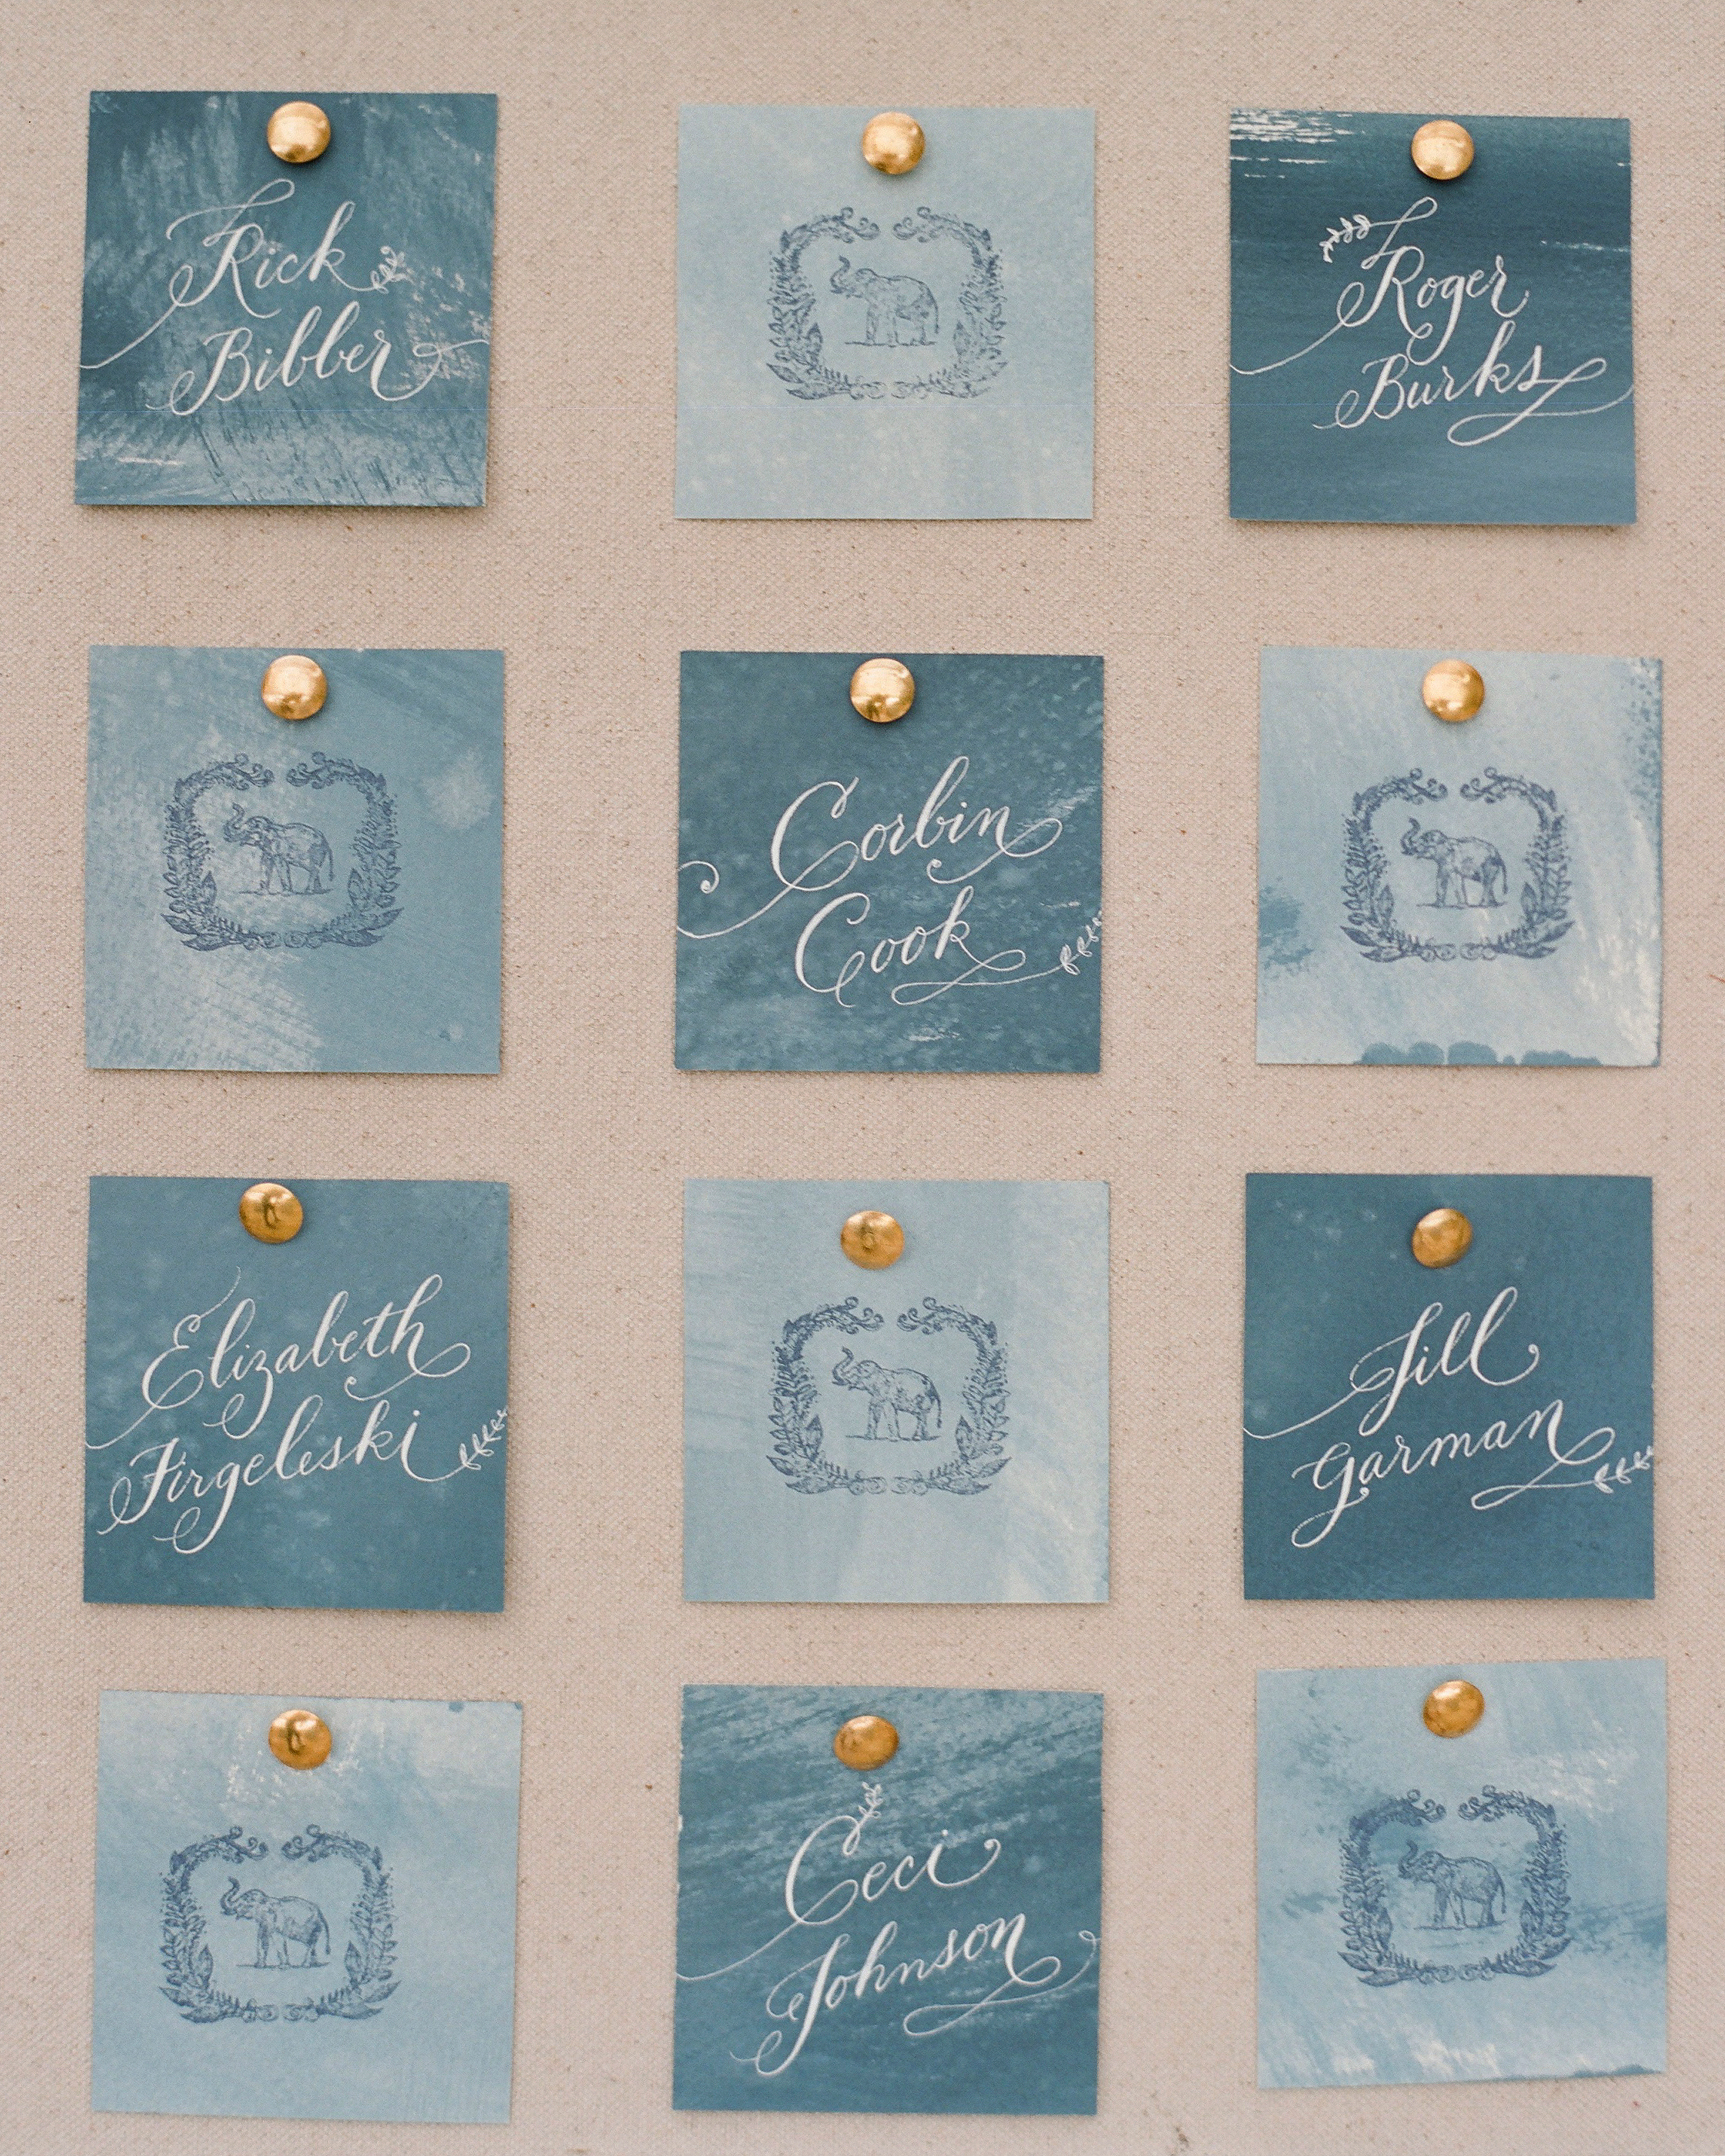 What's the proper way to organize escort cards for guests with different last names?